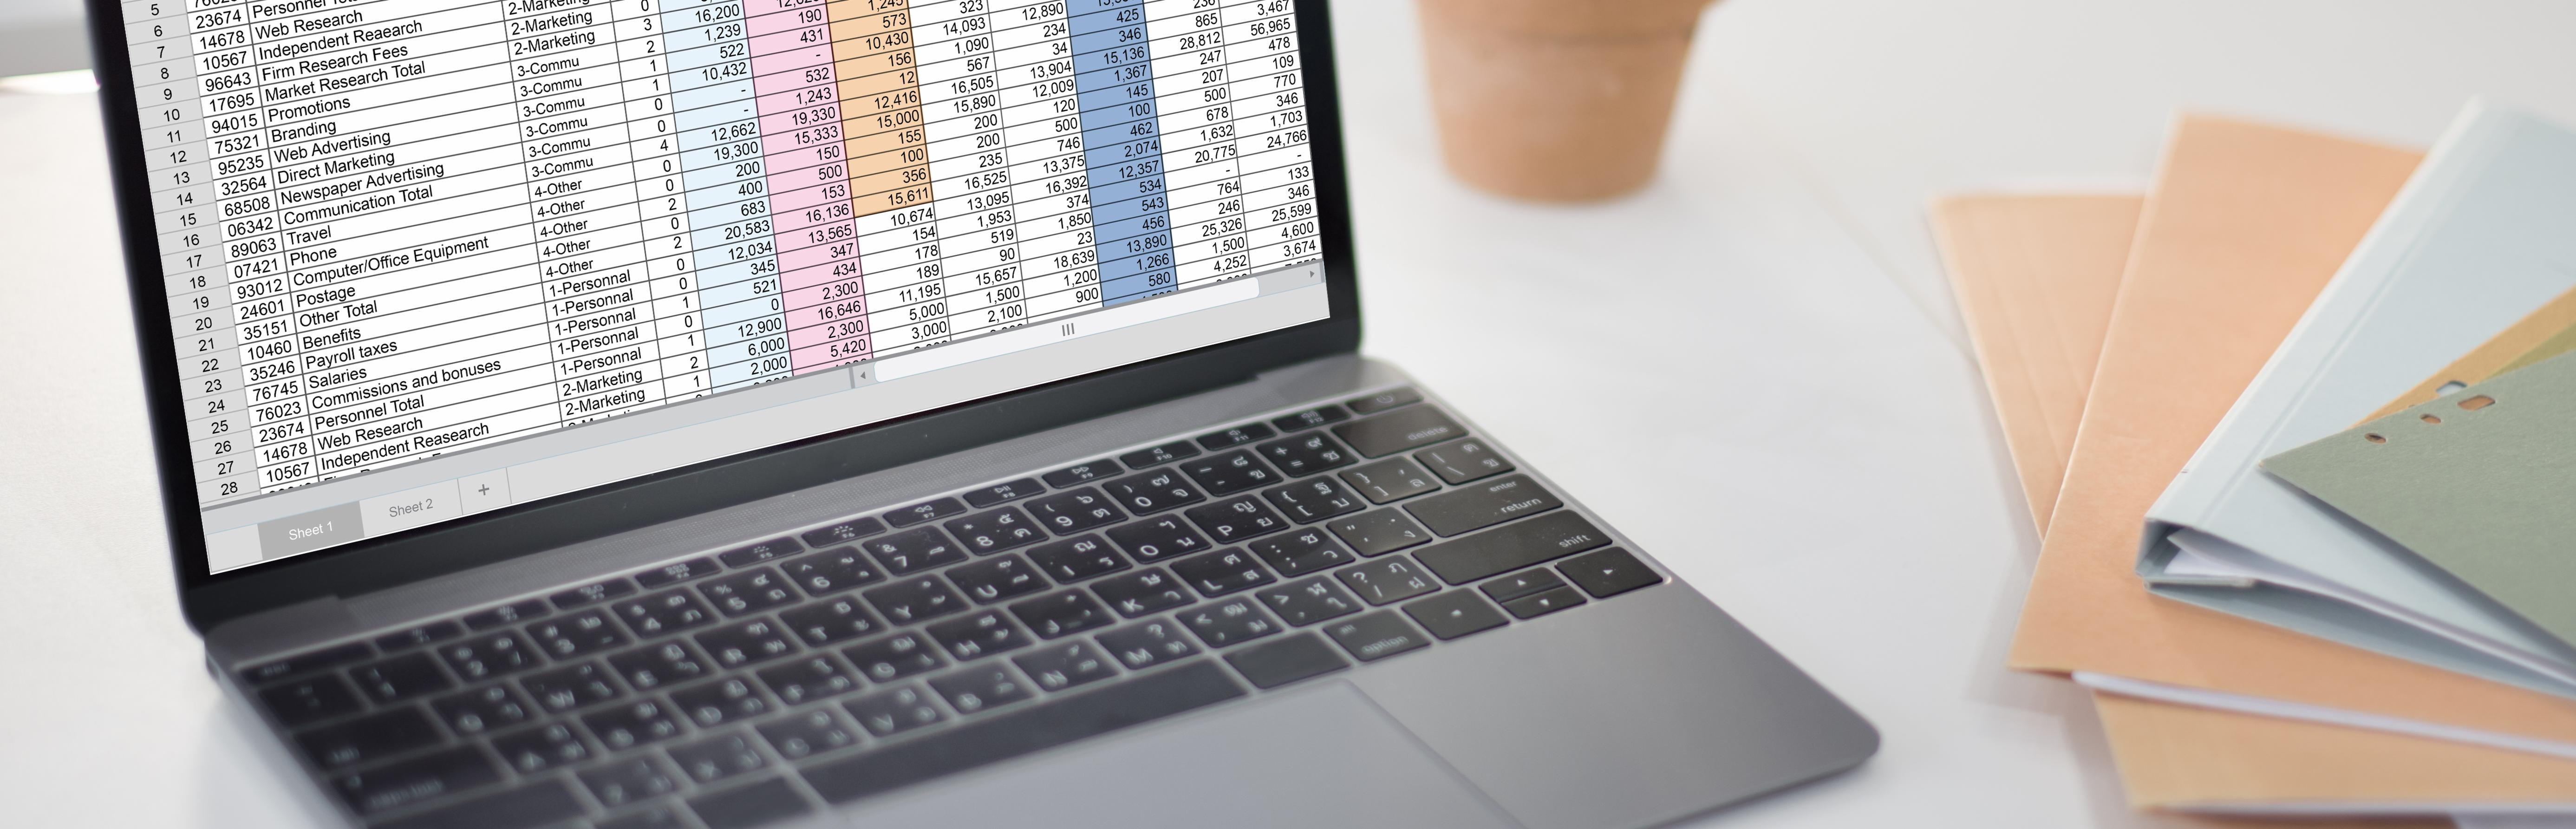 Before You Calculate Commissions In Excel Read This